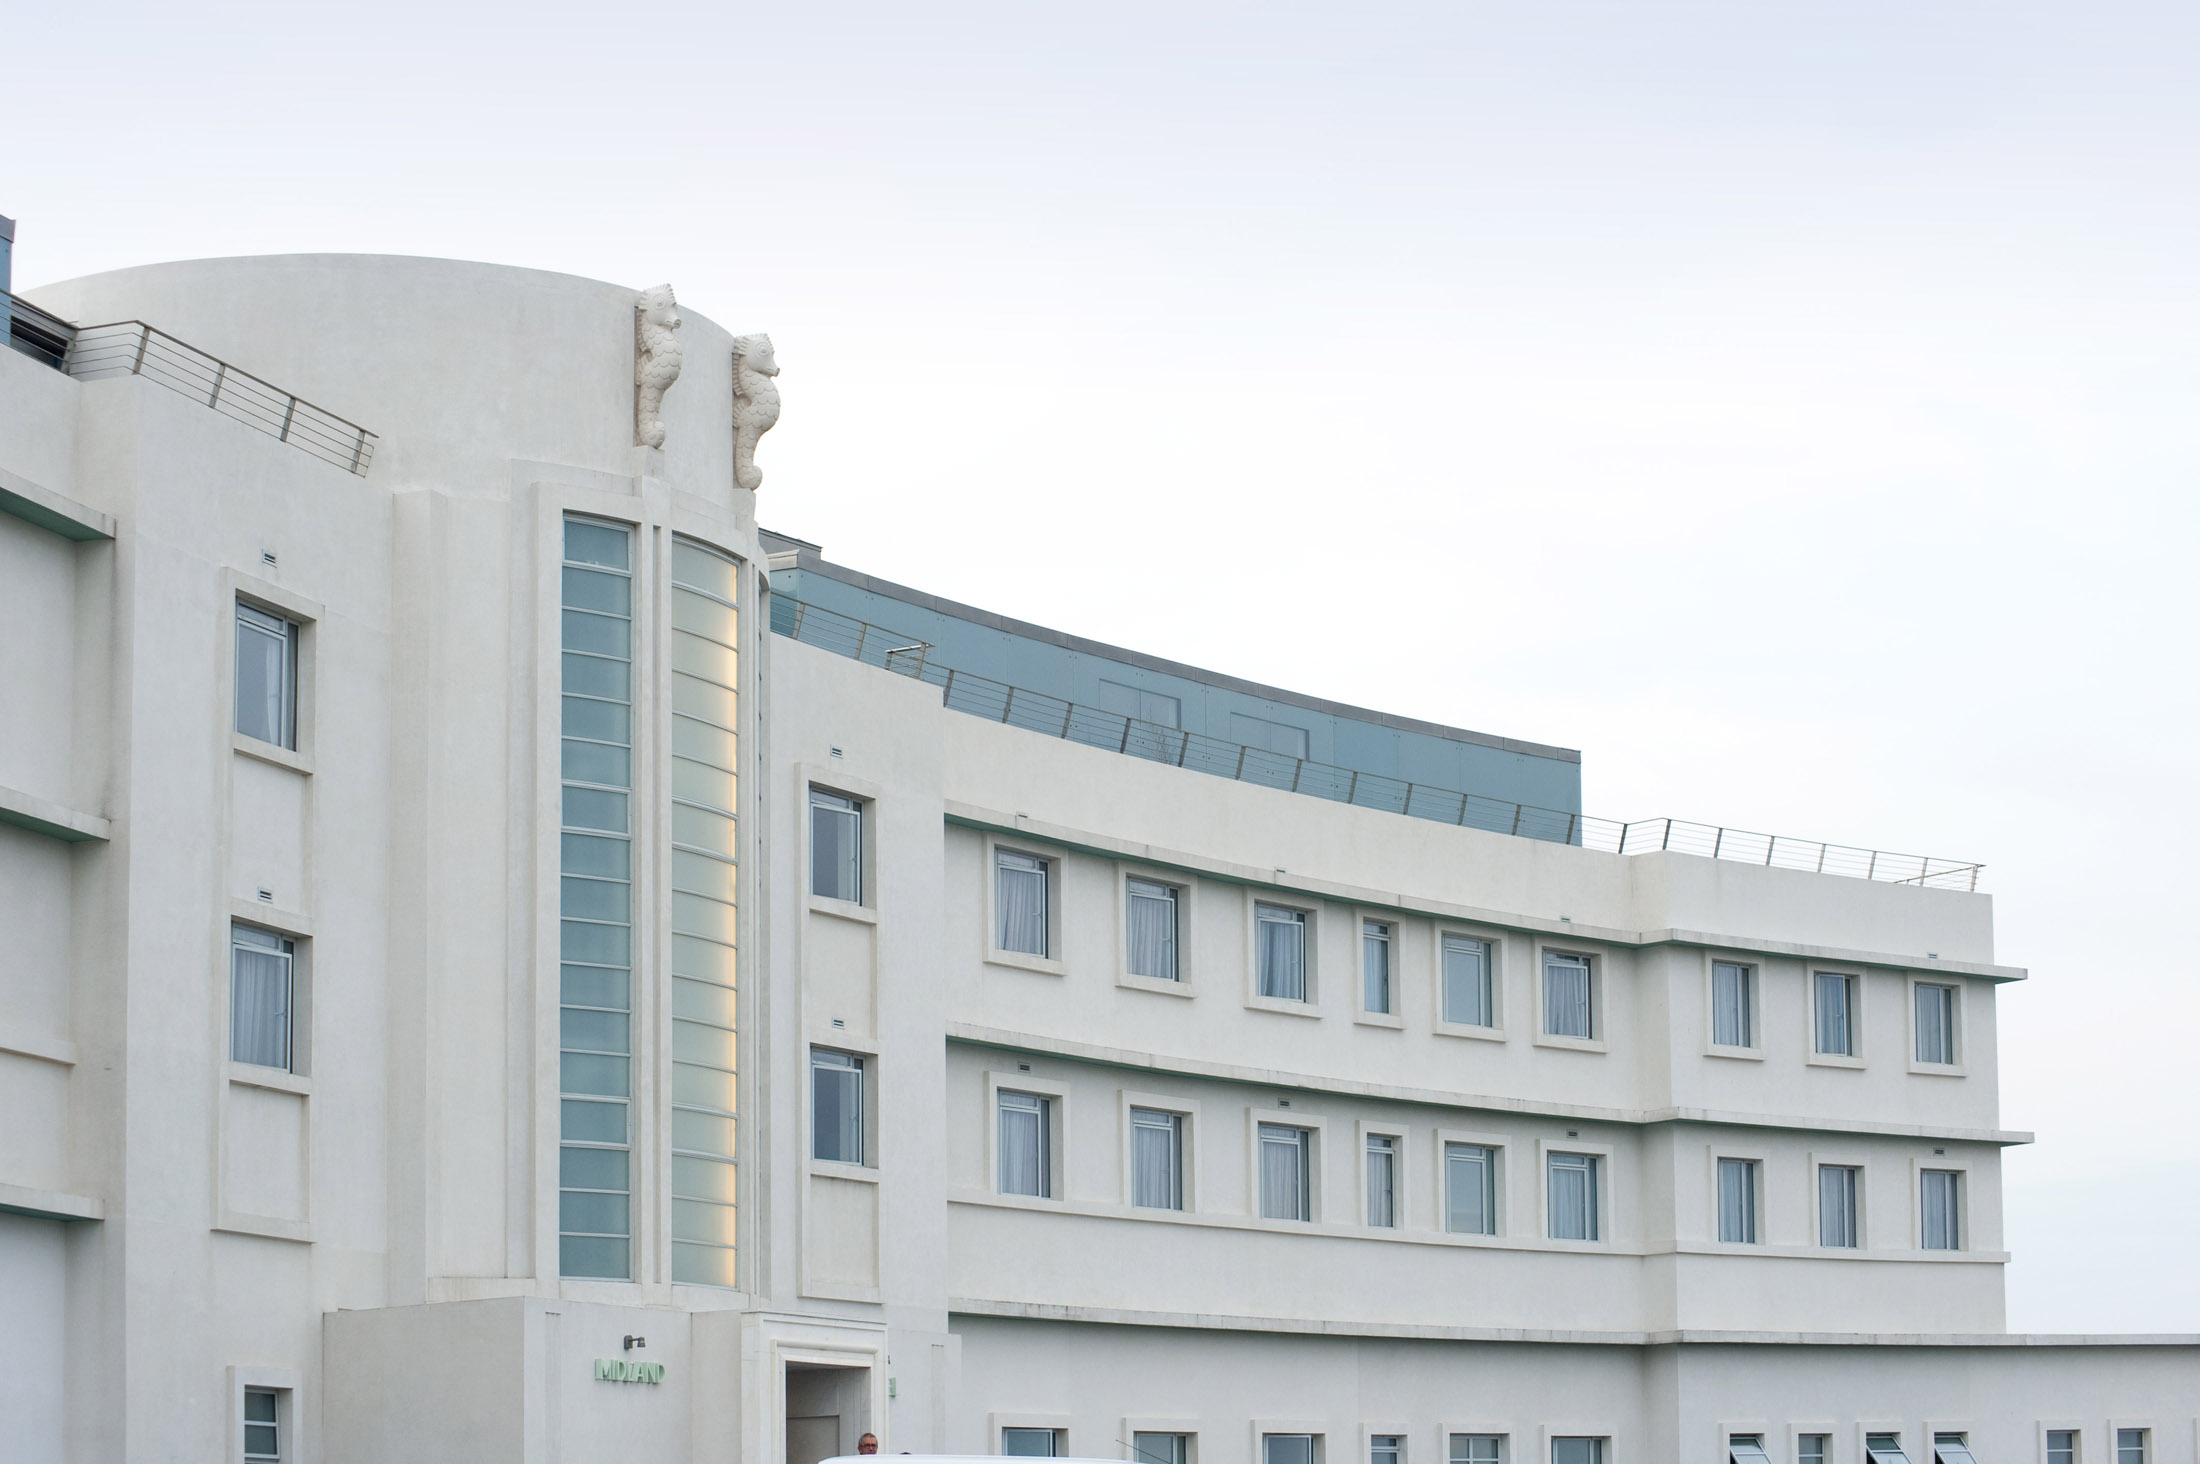 the midland hotel on morecambe sea front following its 2008 renovation